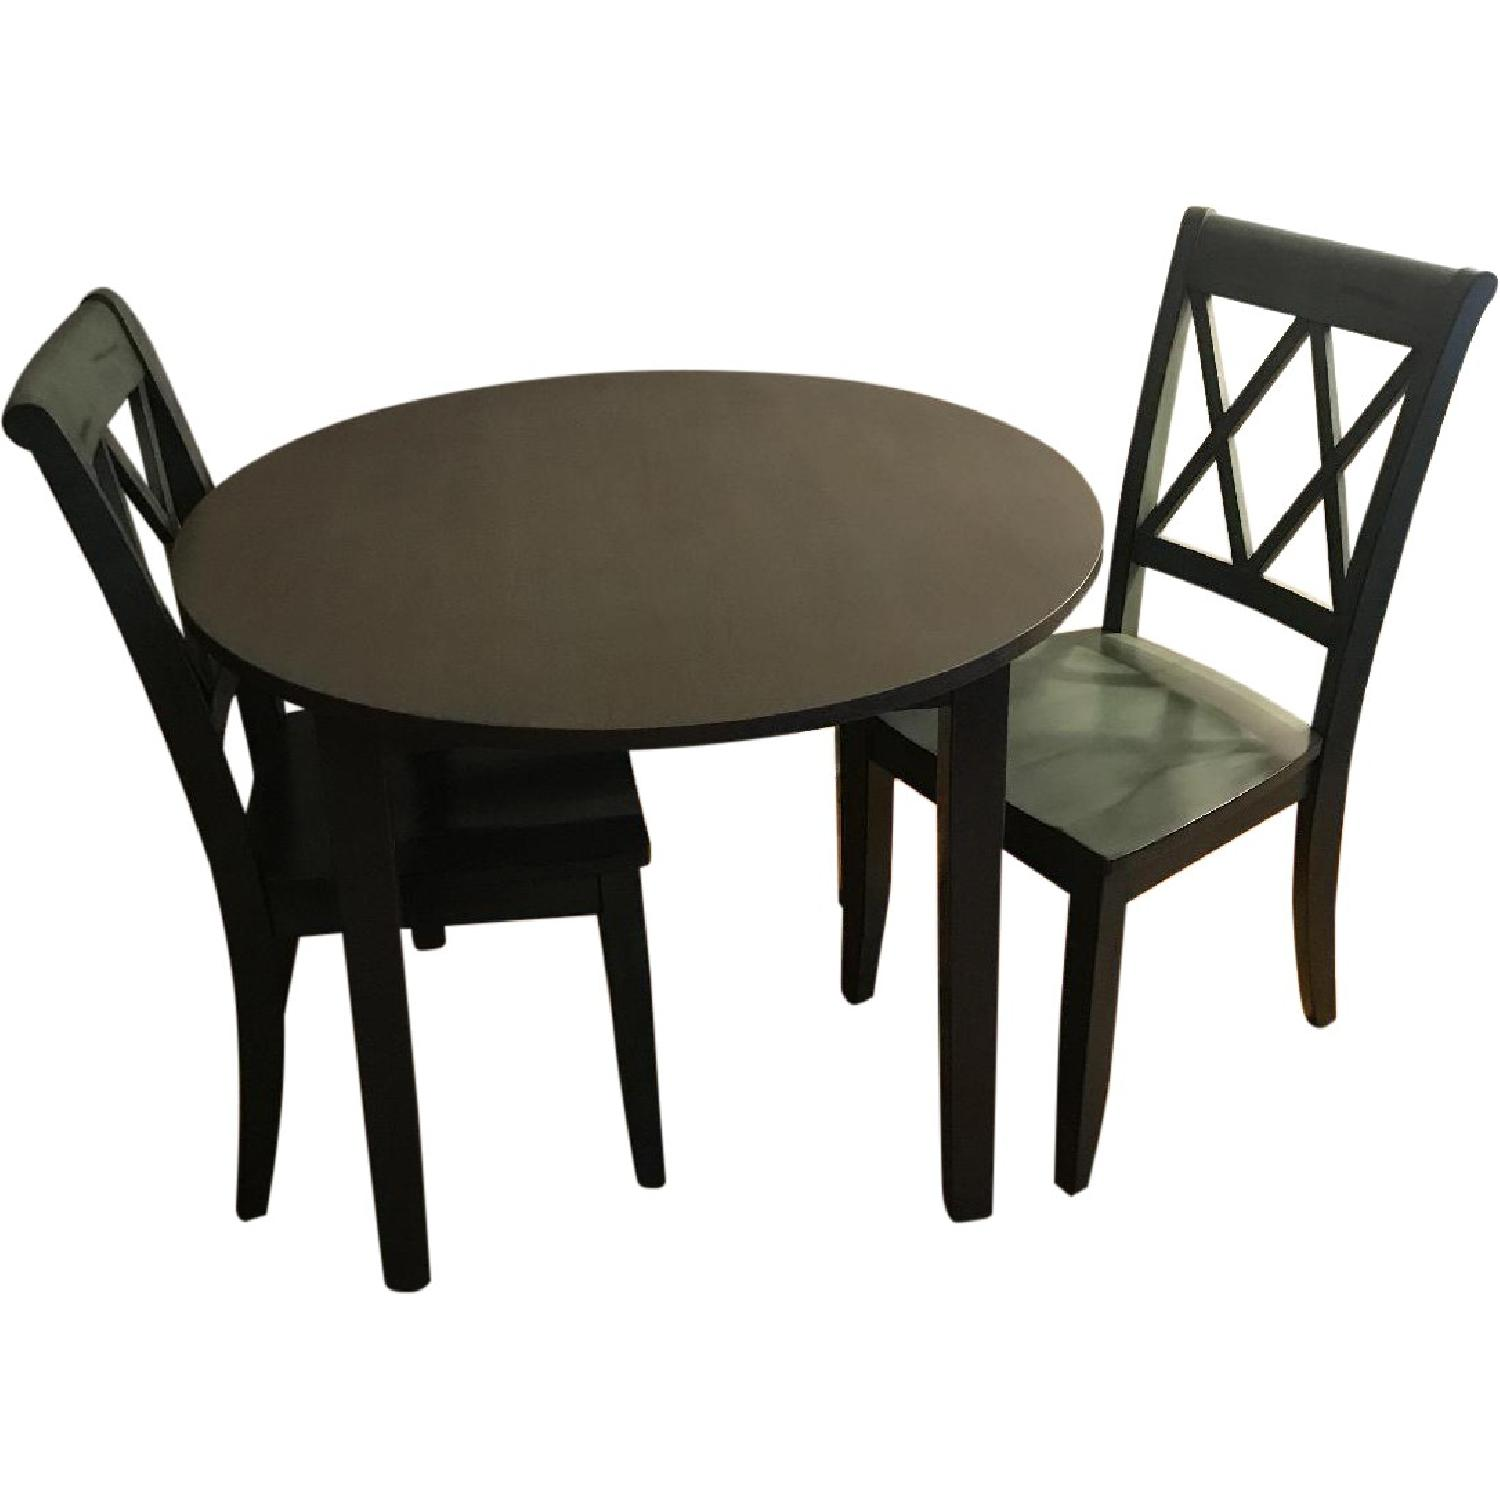 Safavieh Holly French Dining Table w/ 2 Chairs - image-0